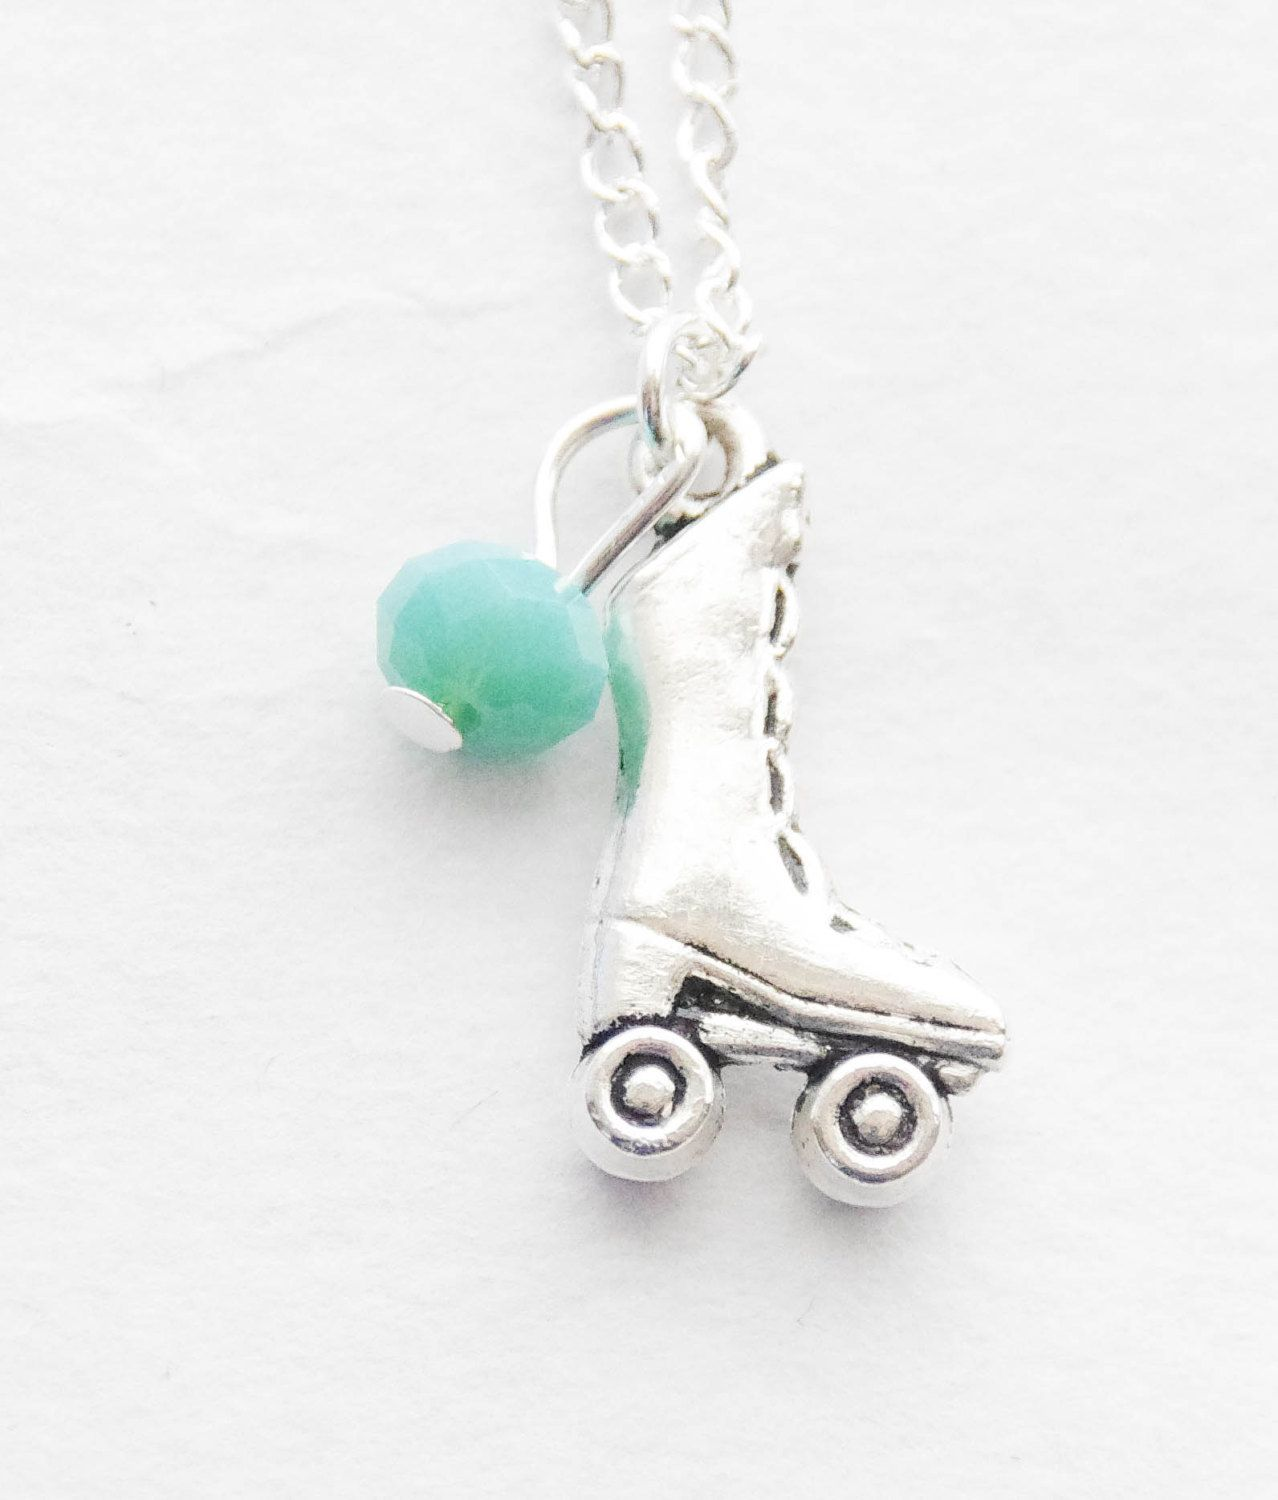 Birth Stone Necklace Mom Gift Roller Skate Necklace Roller Derby Necklace Roller Derby Gift Roller Derby Charm Jewelry Rockabilly Necklace by SmittenKittenKendall on Etsy